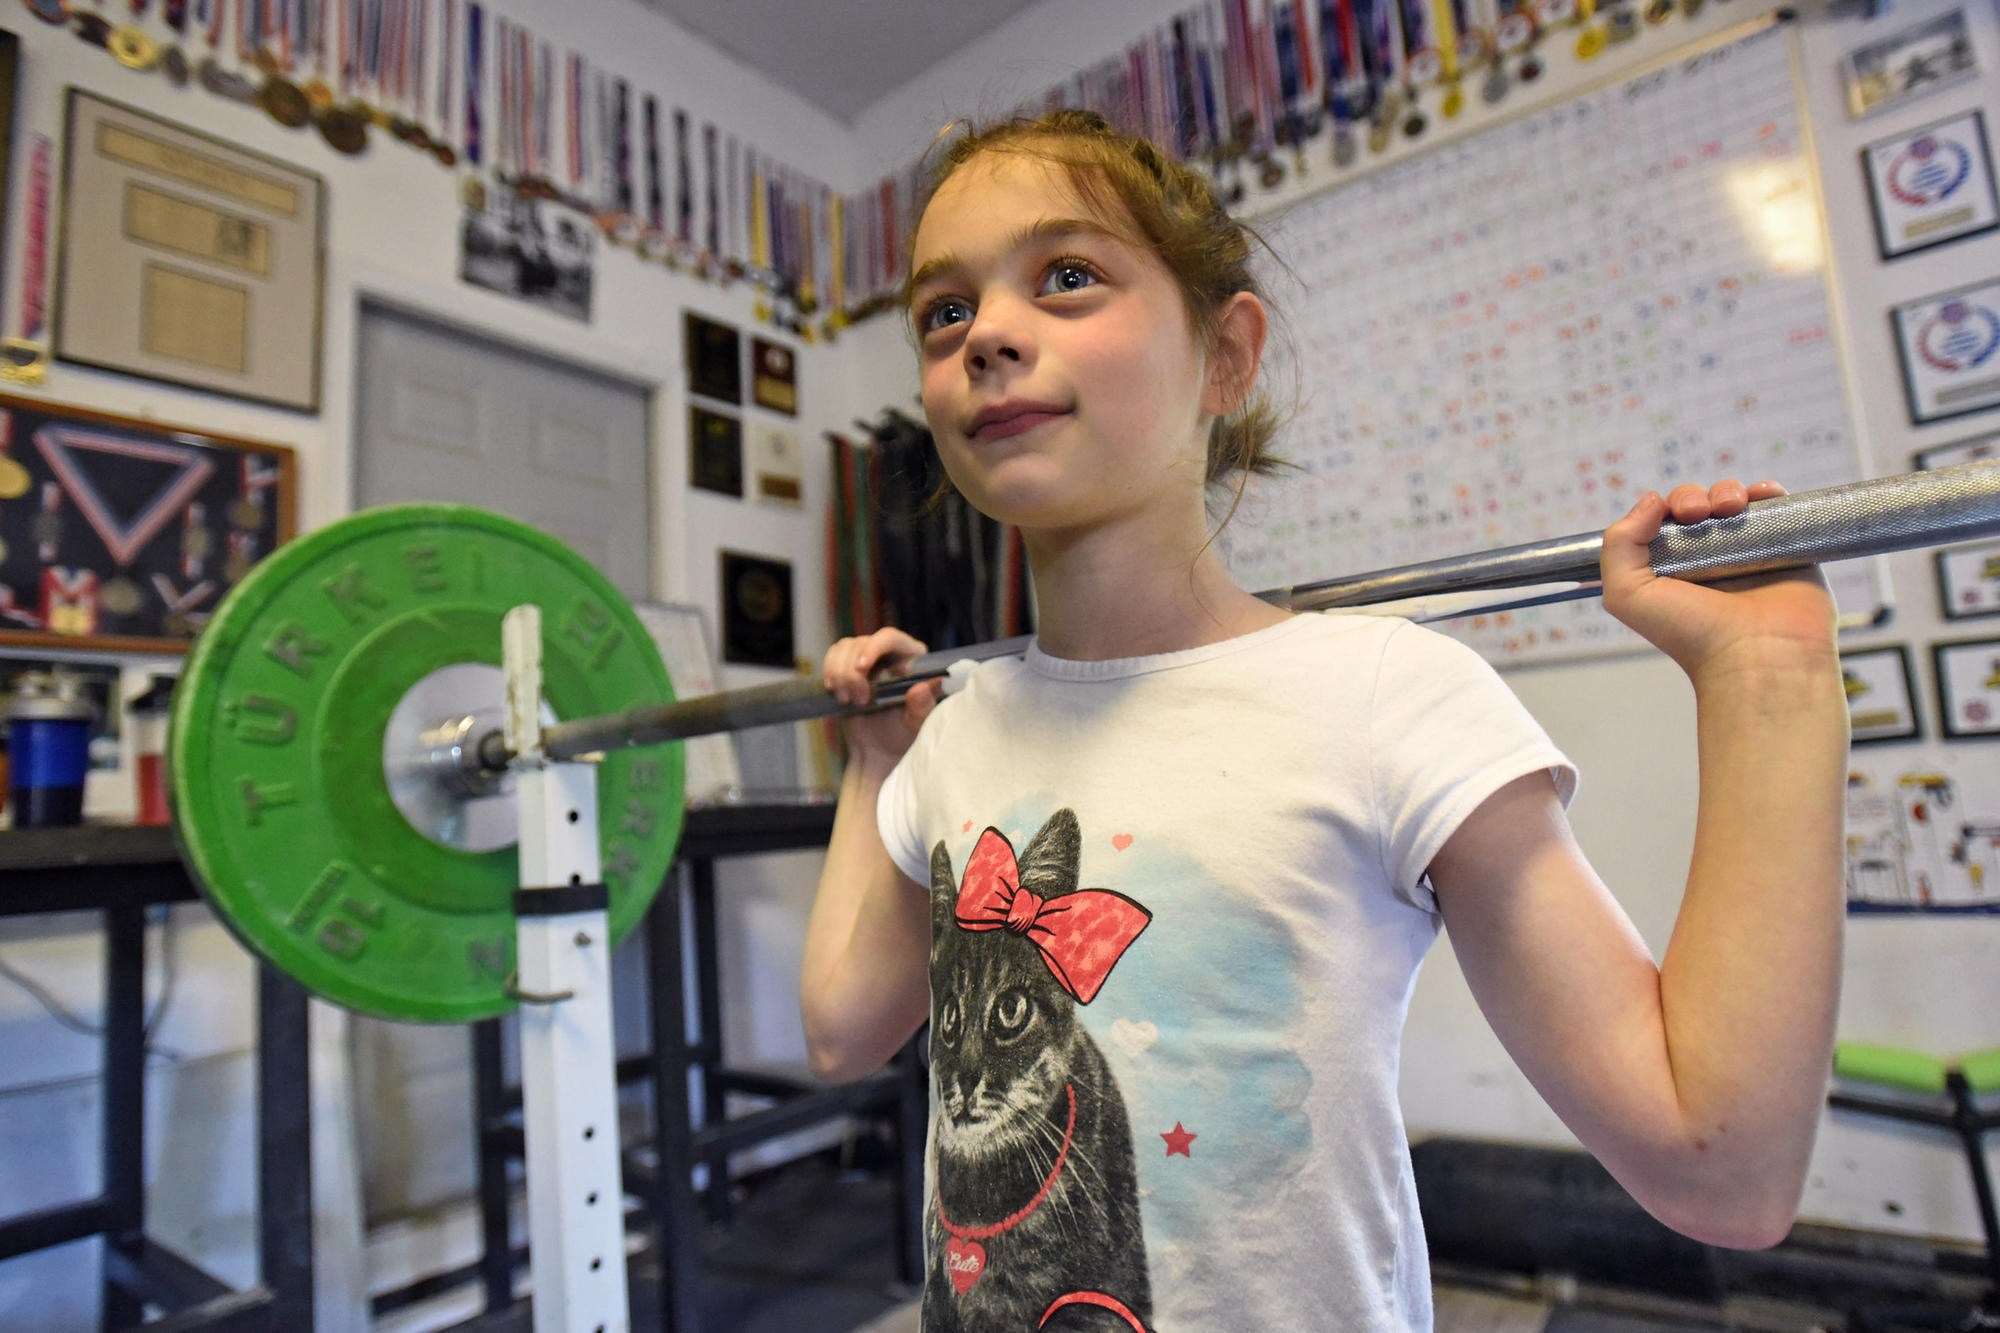 Eight-year-old Parkton powerlifter Kensie Maizels shatters records with a smile | Baltimore Sun